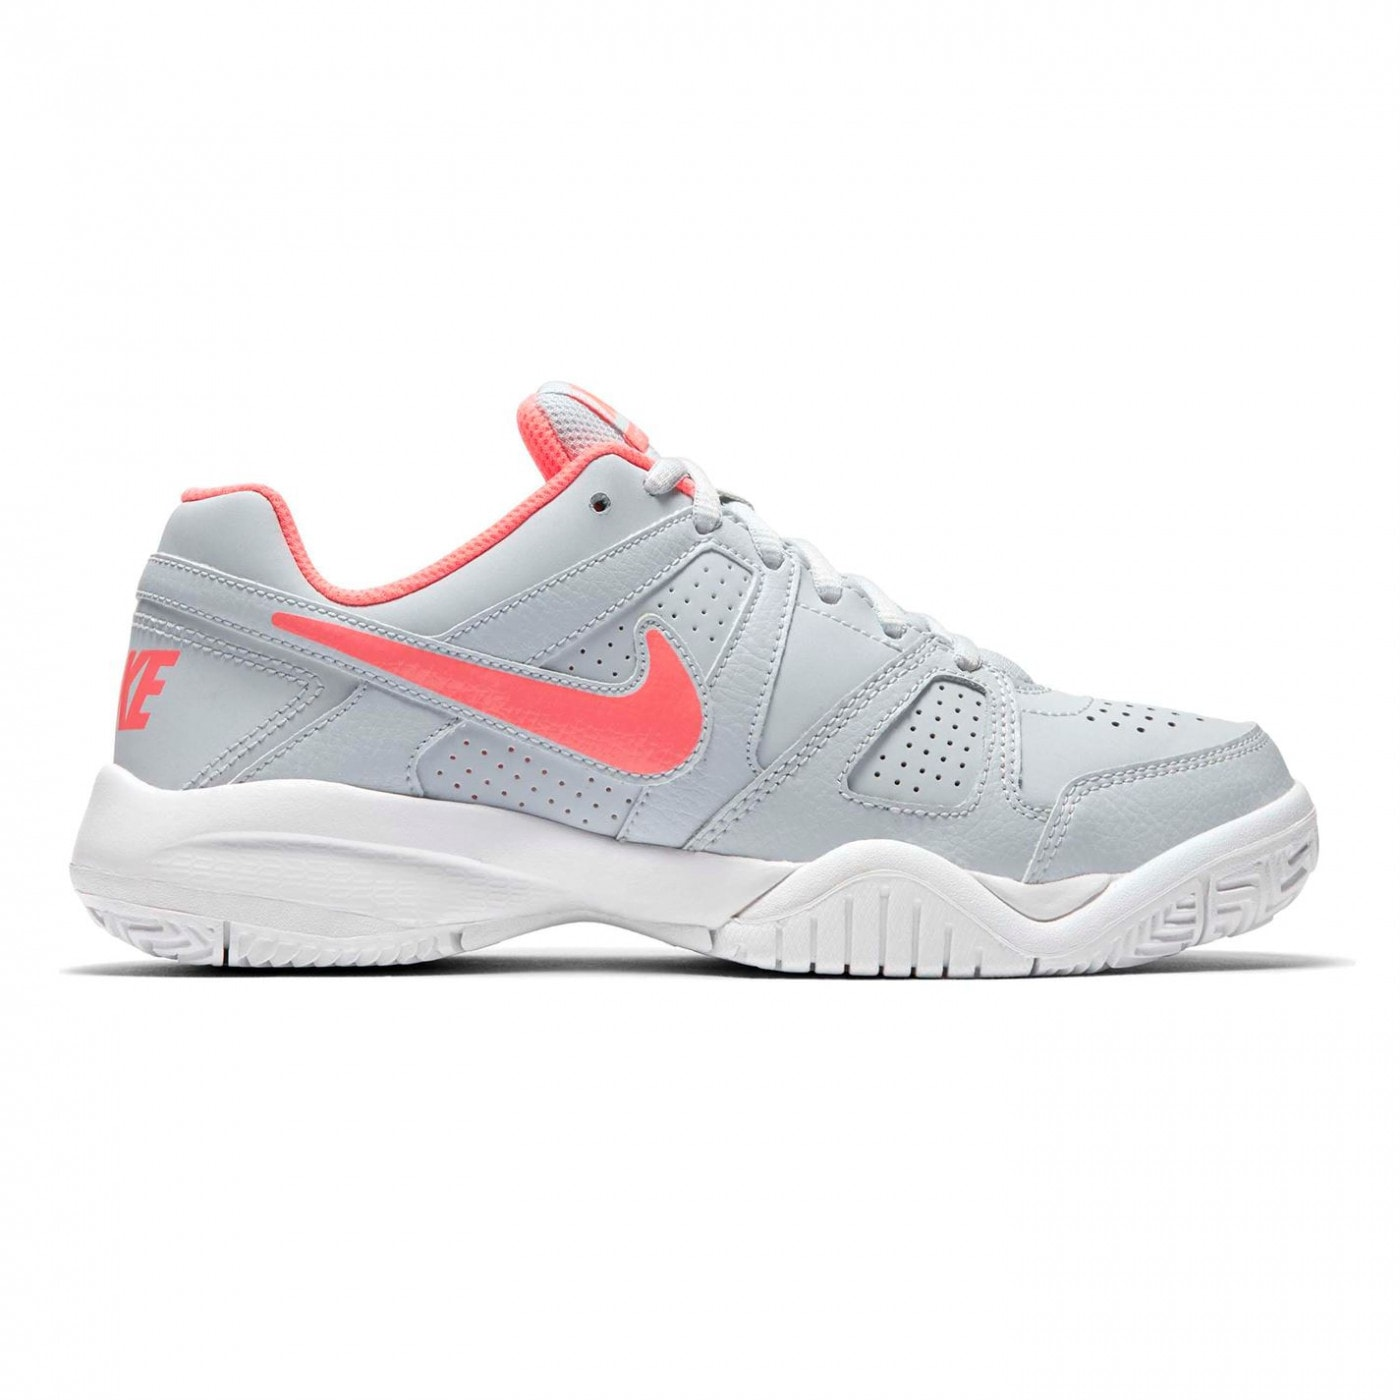 Nike City Court 7 Girls Tennis Shoes